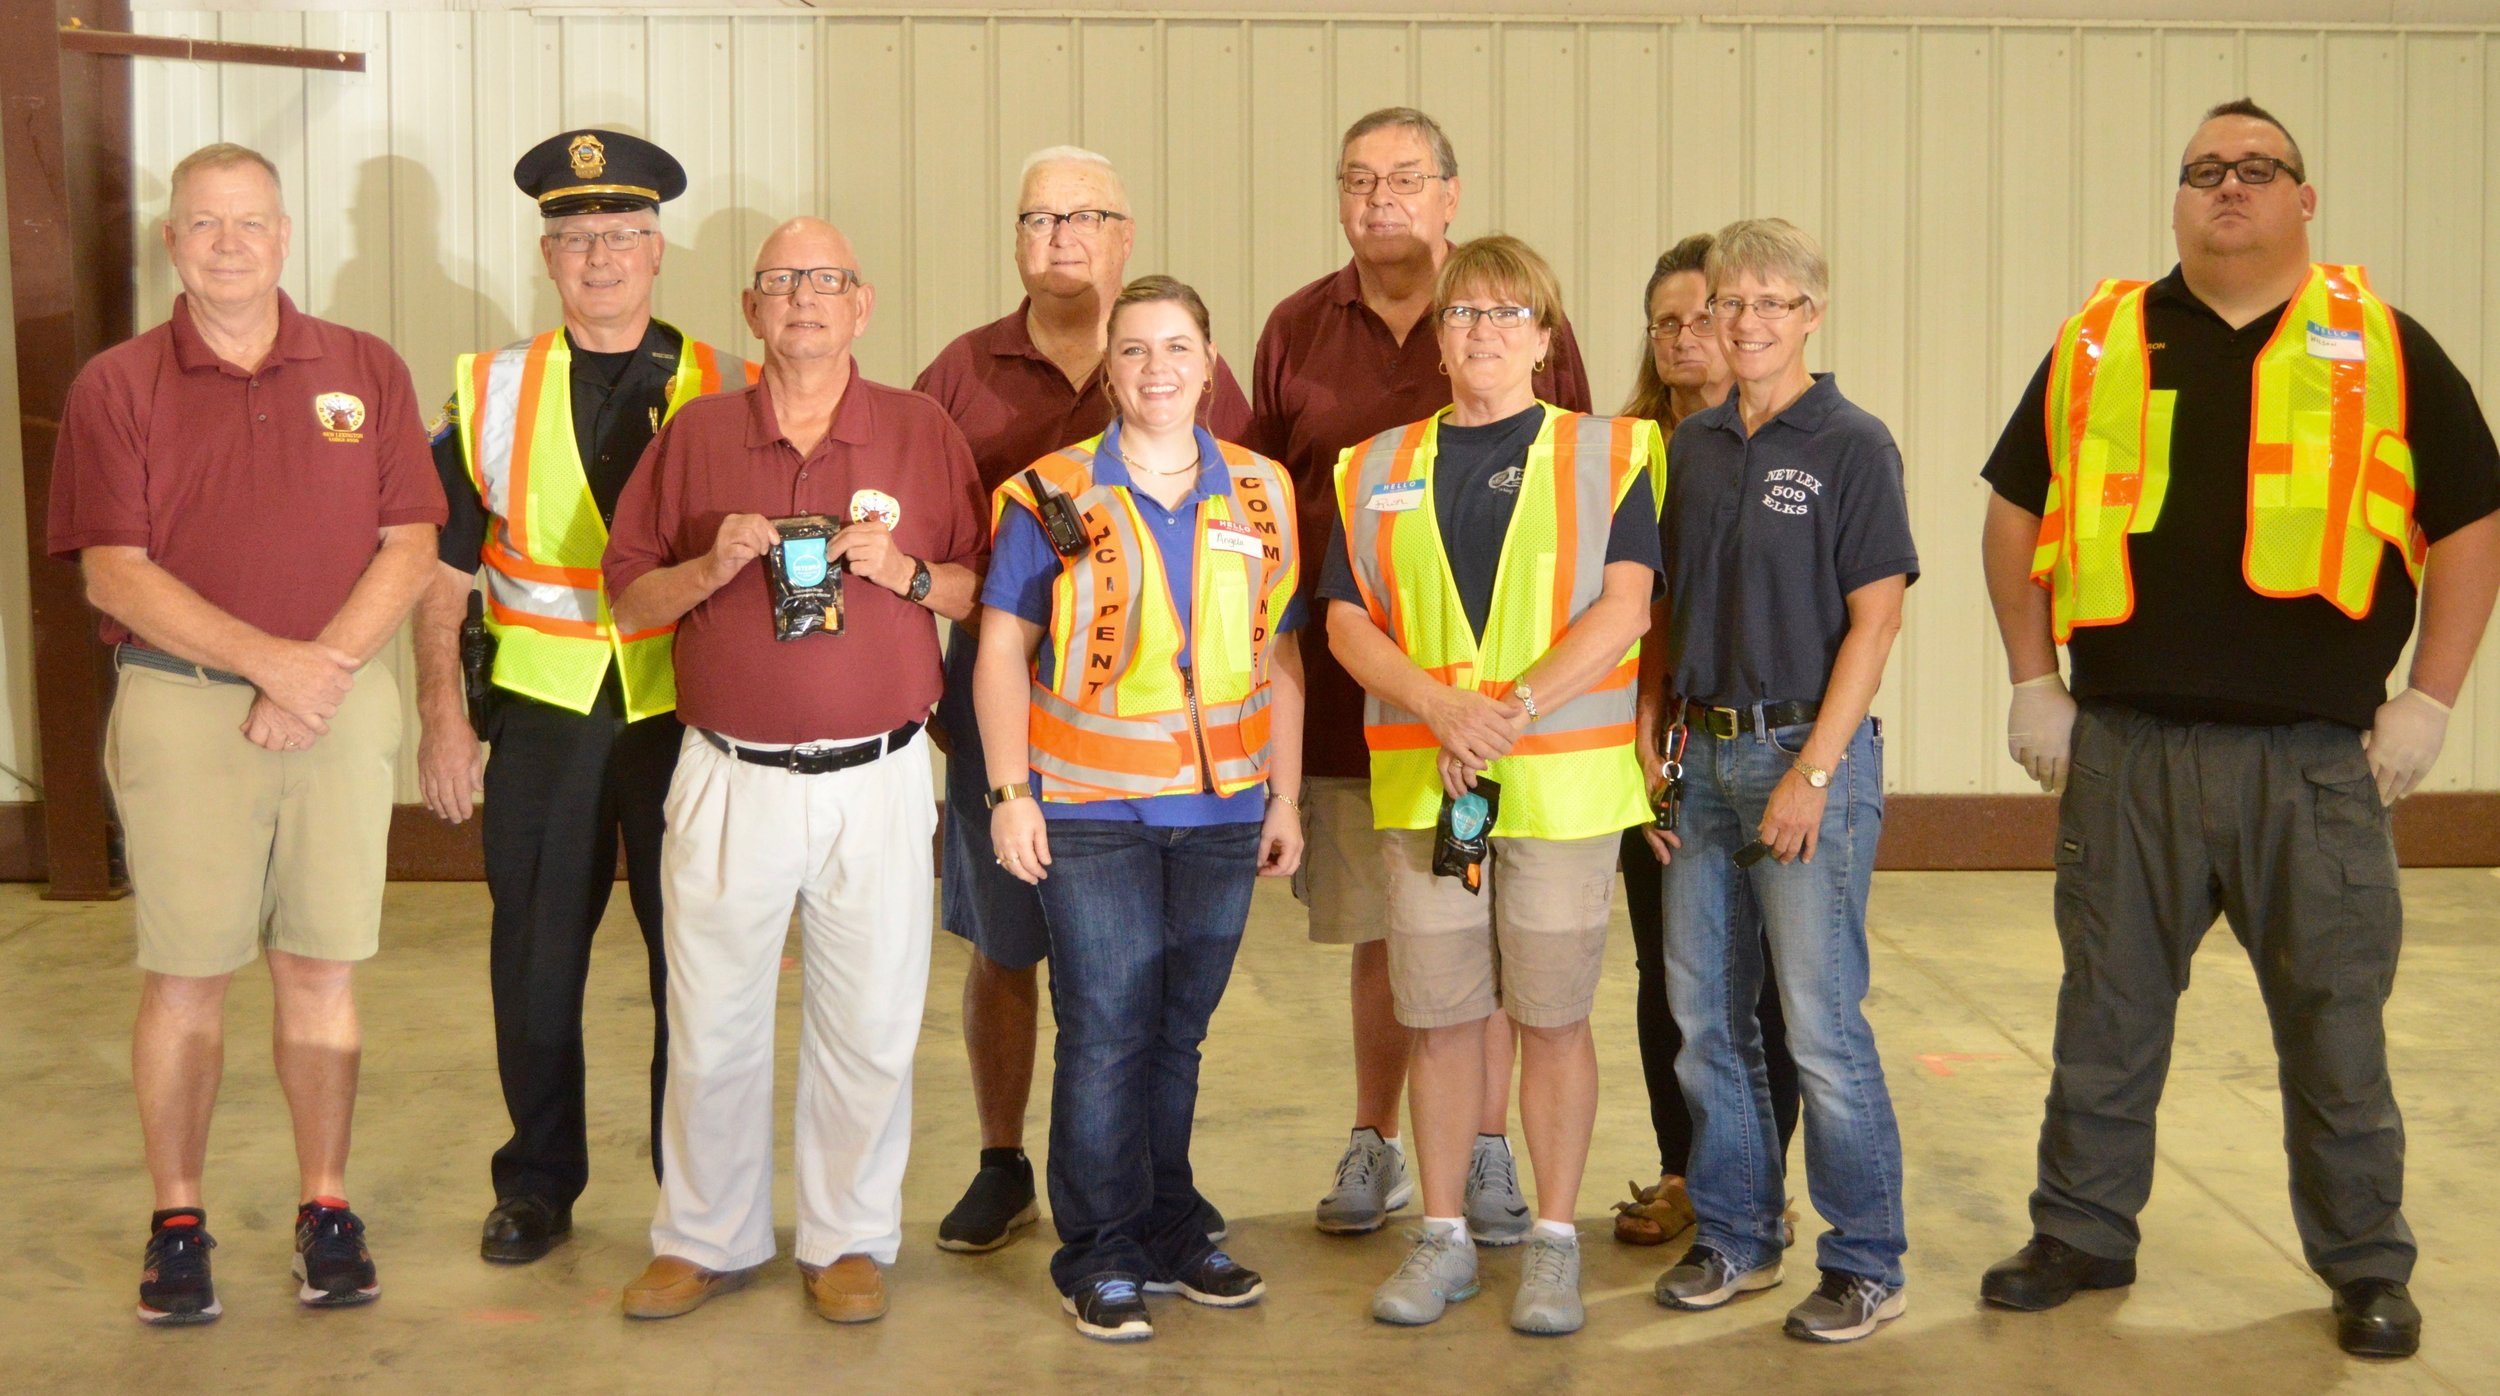 Officers and Trustees of New Lexington Lodge #509 present were Phil Wollenberg PER,Lodge Esquire and Grant Committee Chairperson, Trustee Jim Leckrone, Grant writer Trustee Mike Sherlock, Ruth Liff-Gray, Esteemed Leading Knight,RSVP director, Sheri Howydshell, Lodge manager and Mark Shoemaker, Lodge Tiler.